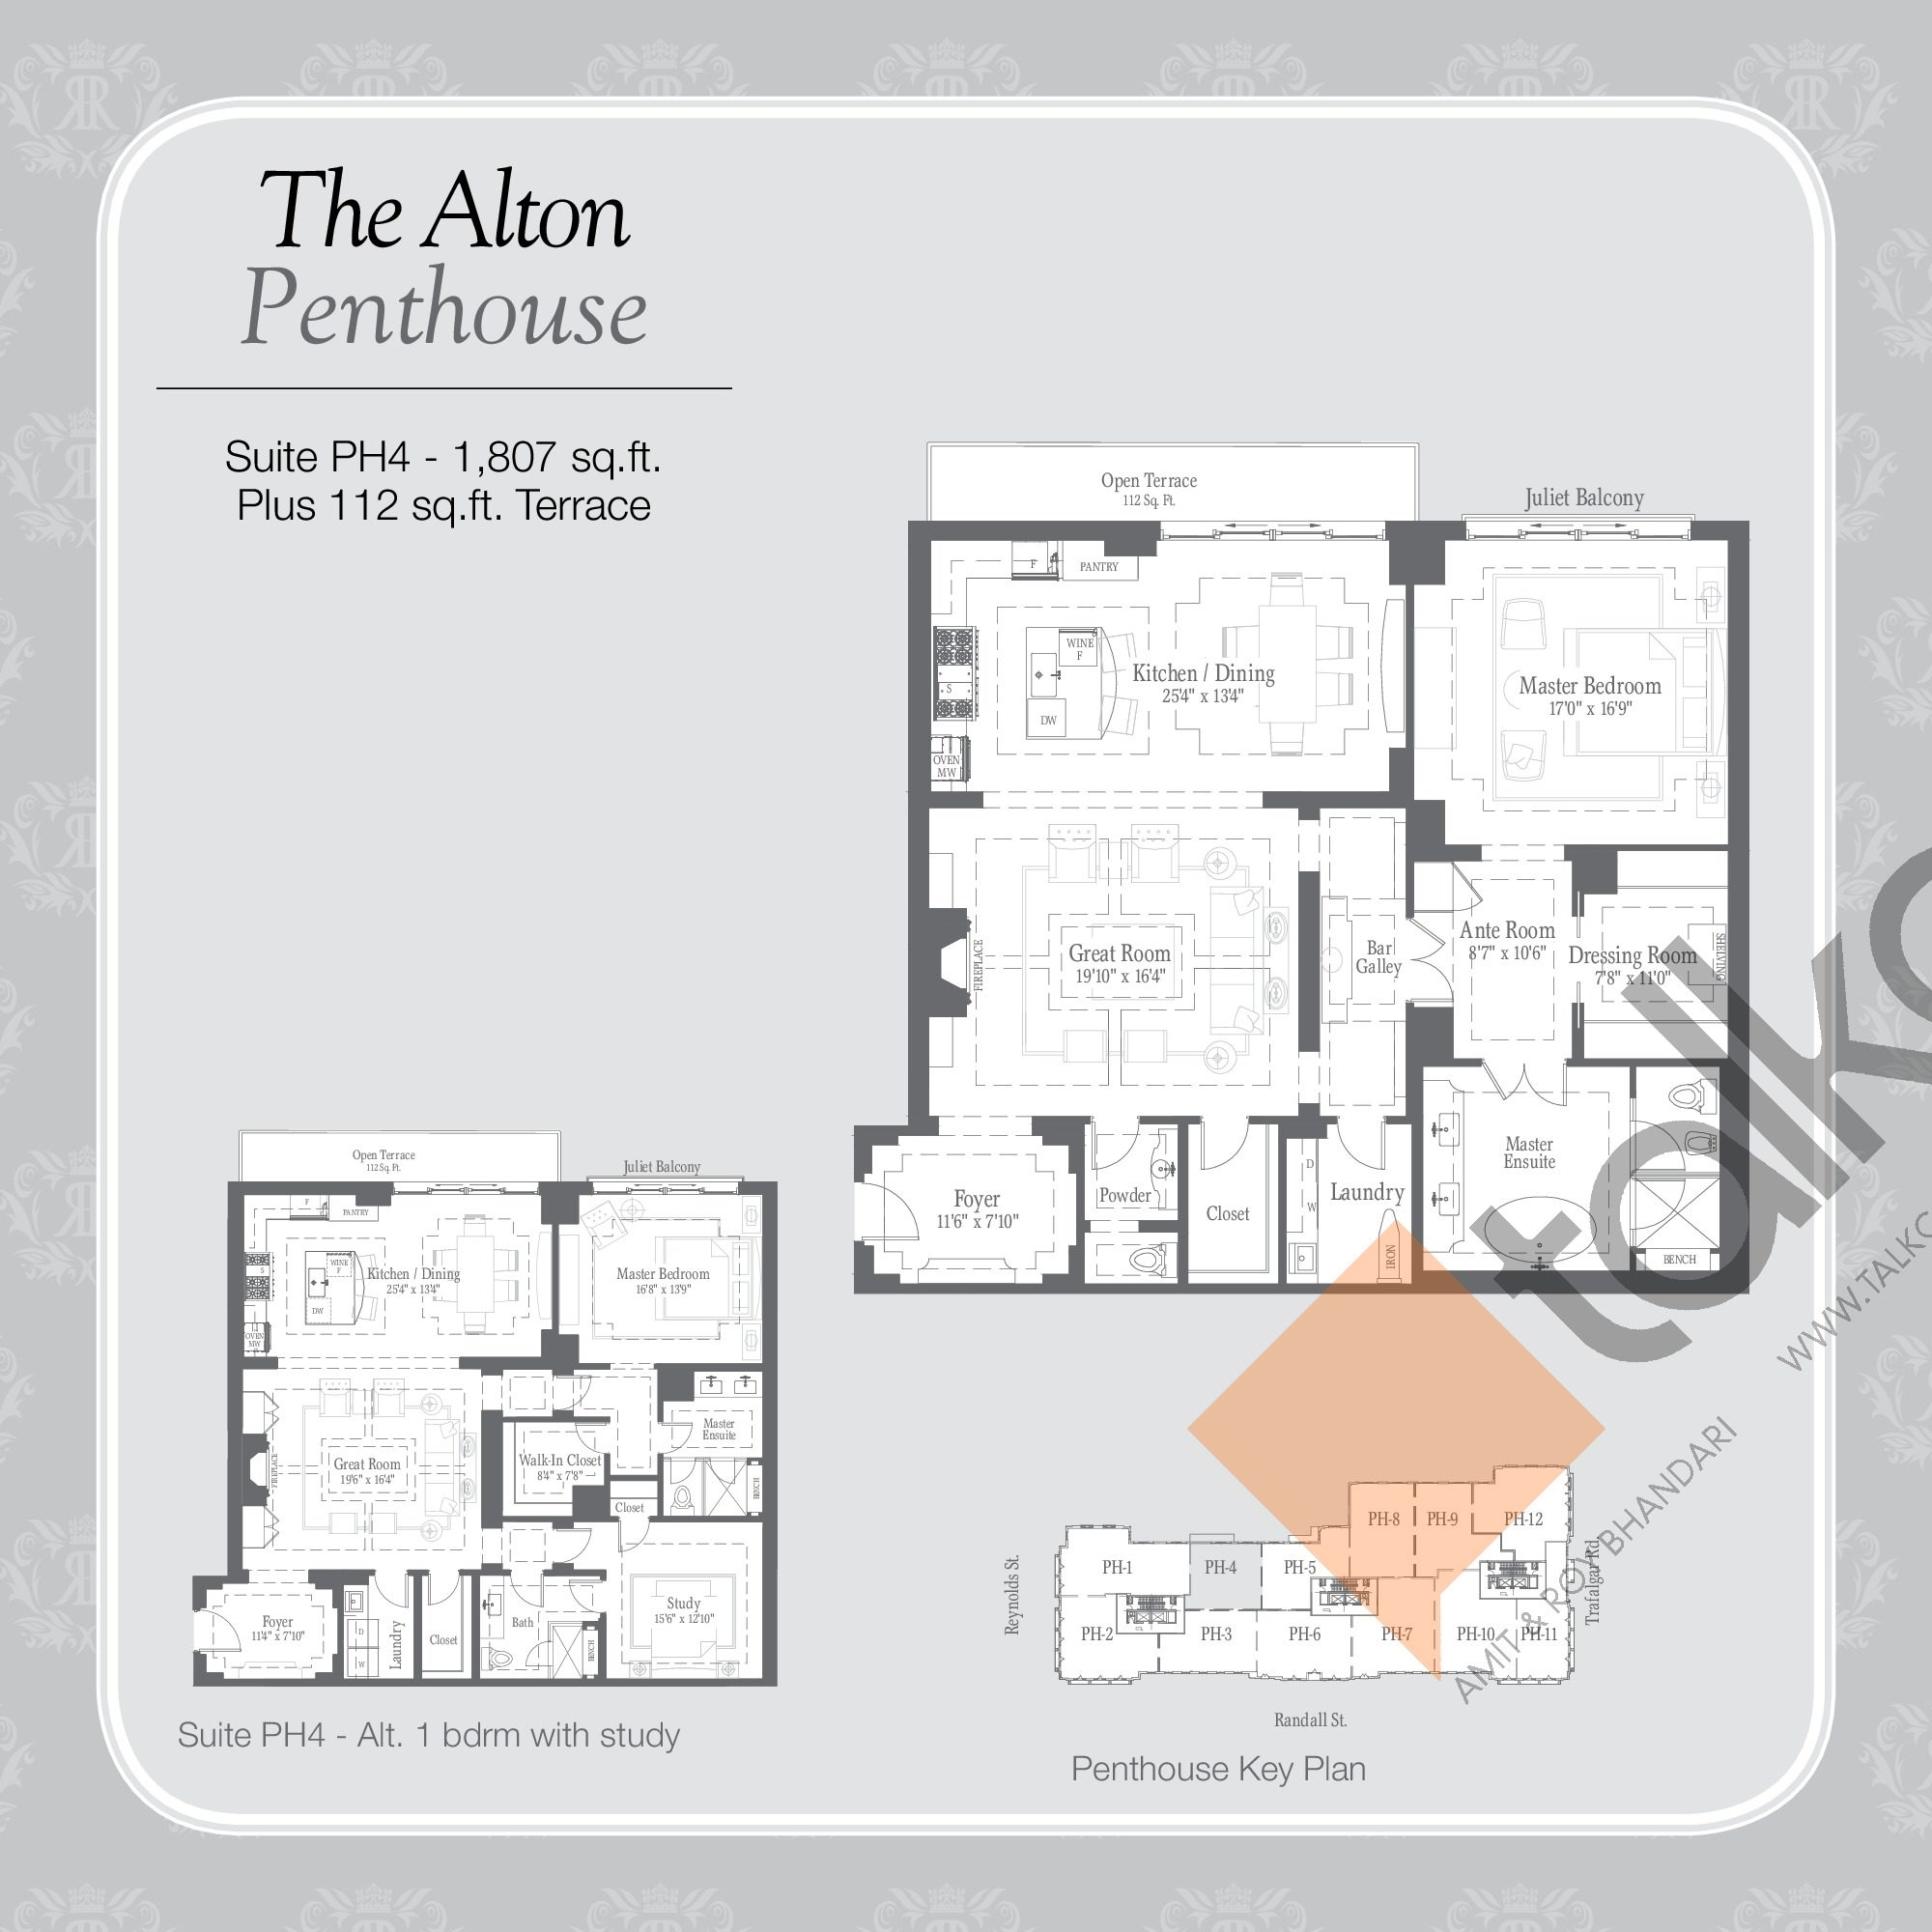 The Alton Penthouse Floor Plan at Randall Residences - 1807 sq.ft